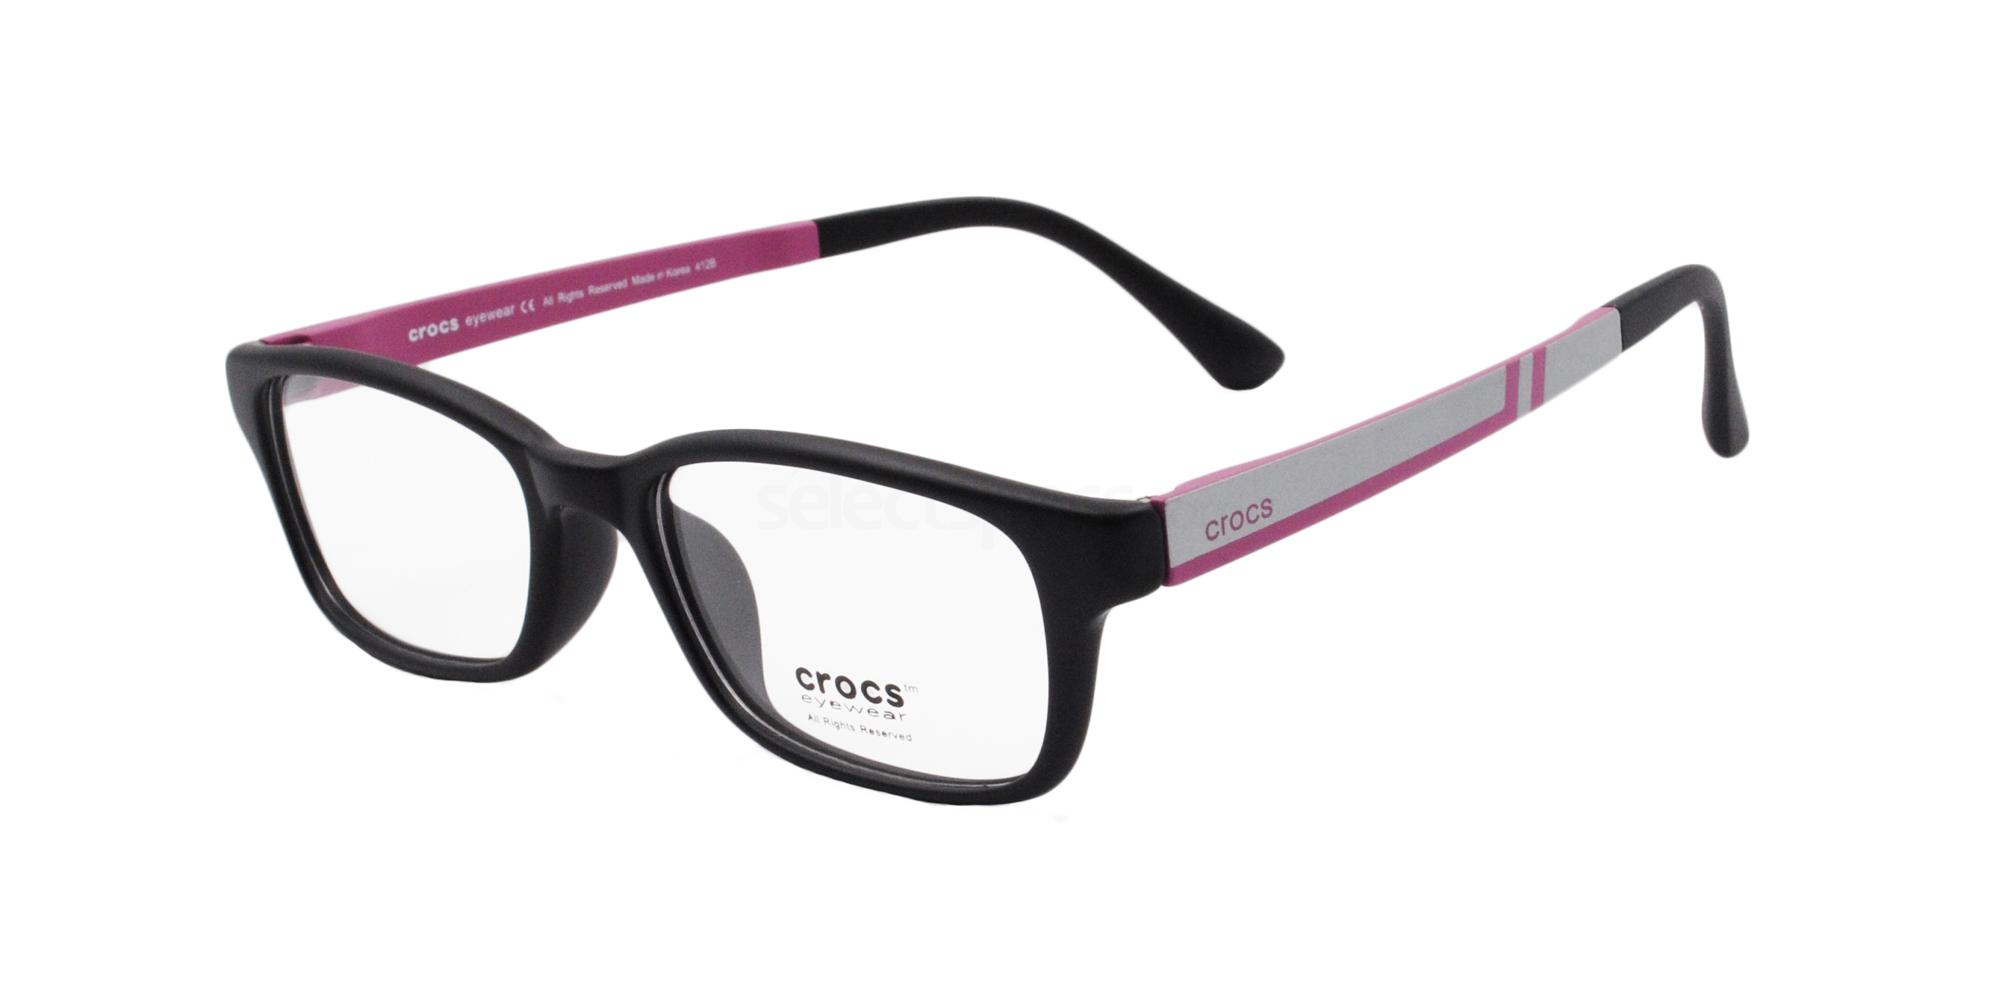 20PE CF636 Glasses, Crocs Eyewear